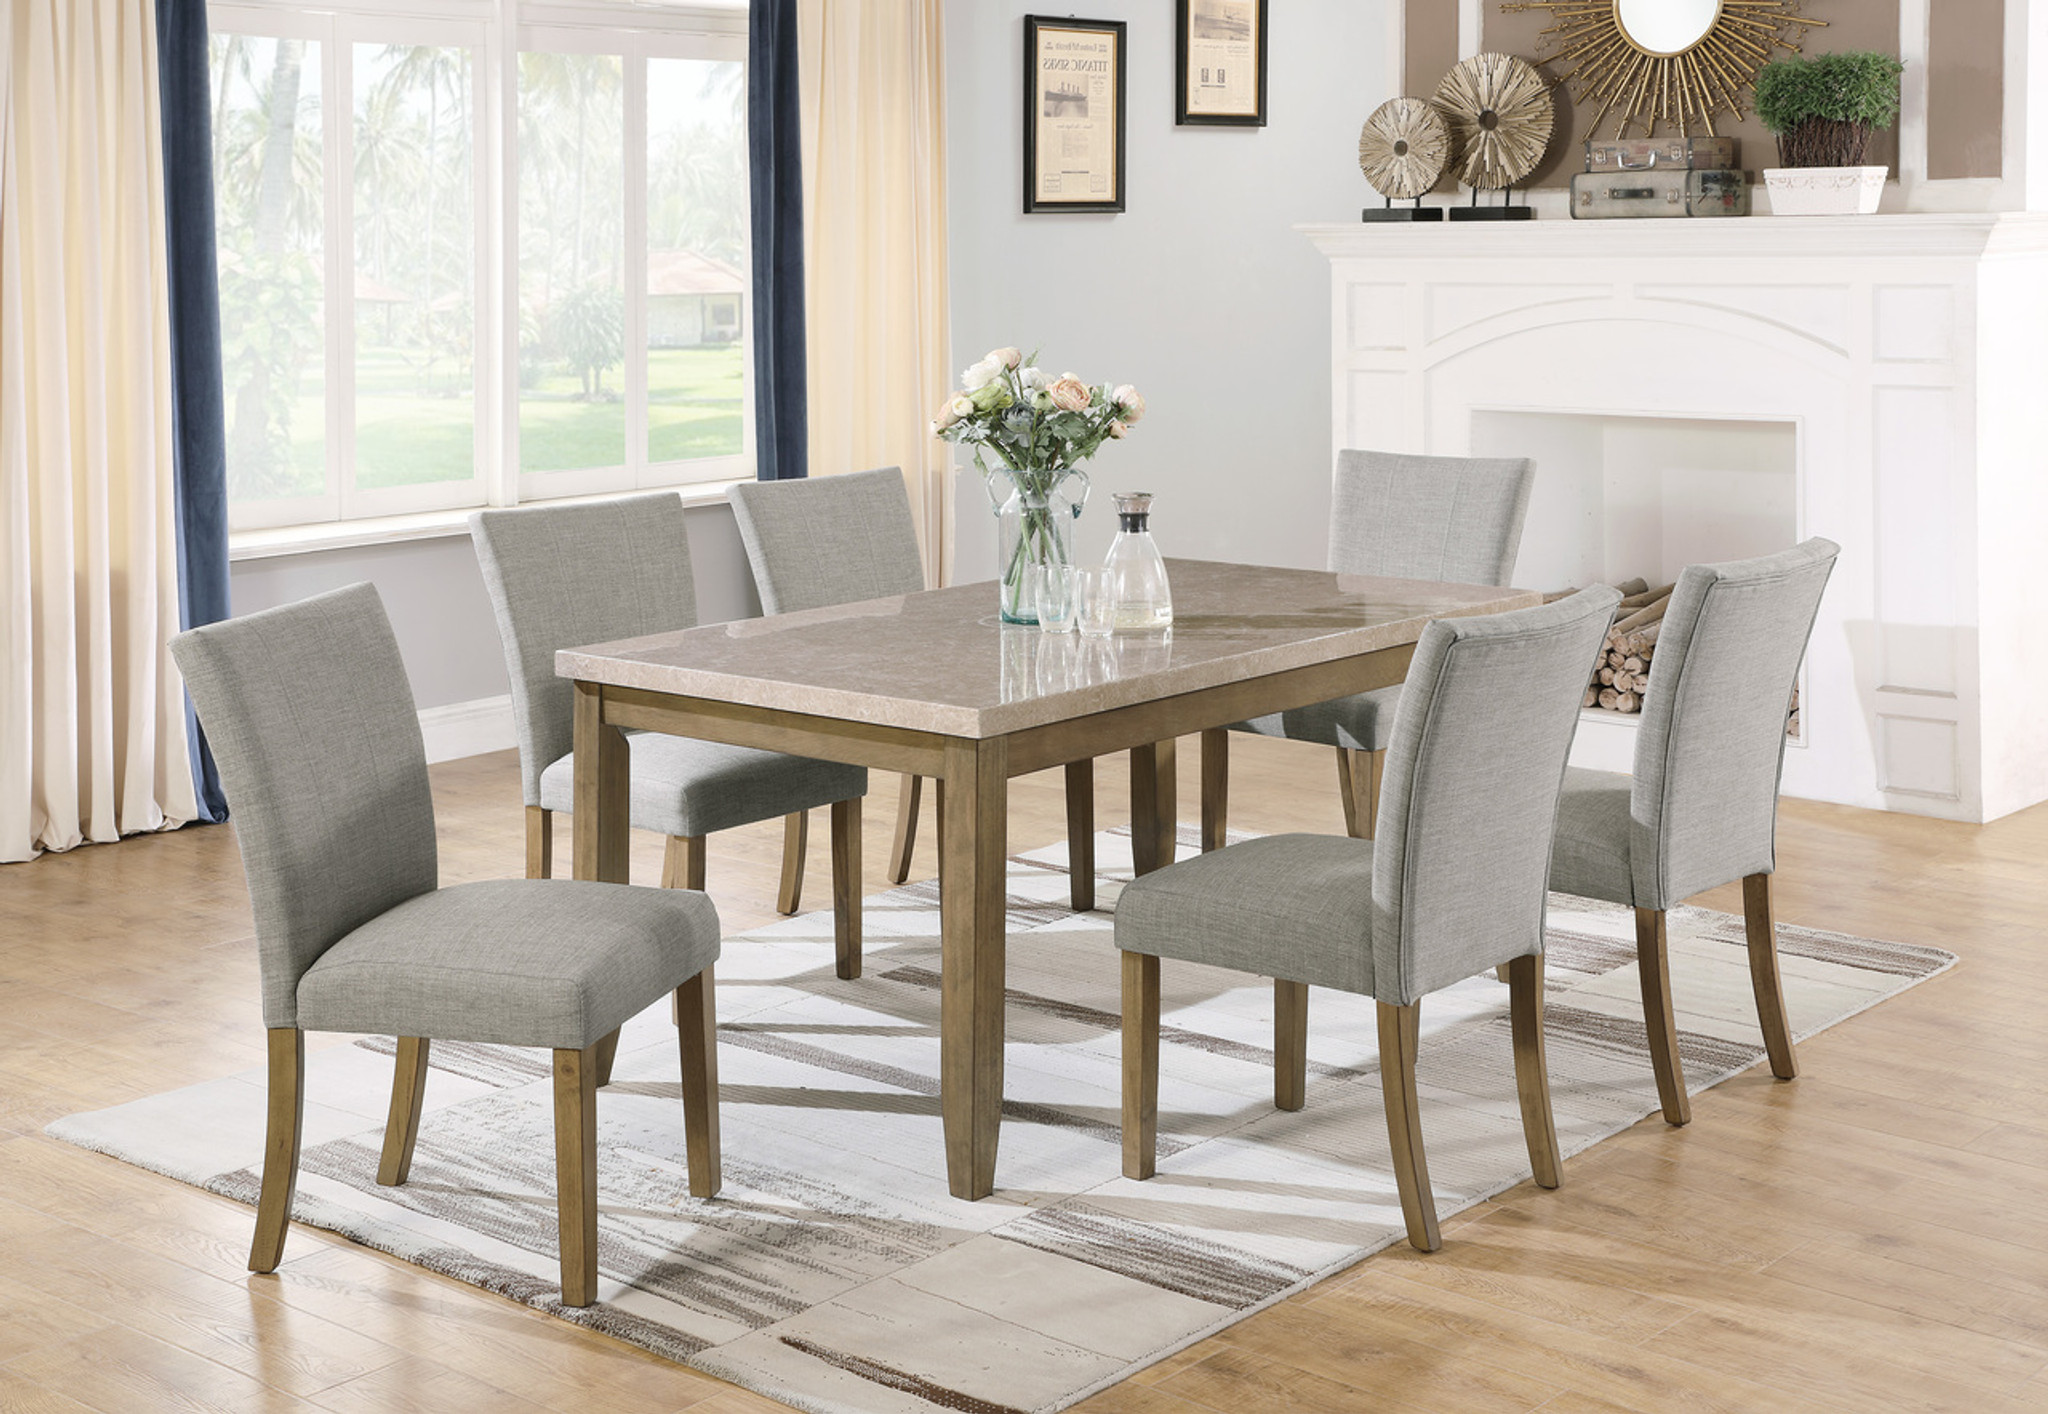 2222T/S MIKE DINING TABLE 5 PIECE SET COLLECTION by Crown Mark on kitchen dining chairs, antique kitchen tables and chairs, kitchen table with chairs, oak kitchen chairs, large kitchen tables and chairs, red chrome kitchen chairs, kmart kitchen tables and chairs, kitchen tables without chairs, quality kitchen tables and chairs, furniture sofas and chairs, furniture kitchen dinette sets, amish kitchen tables and chairs,